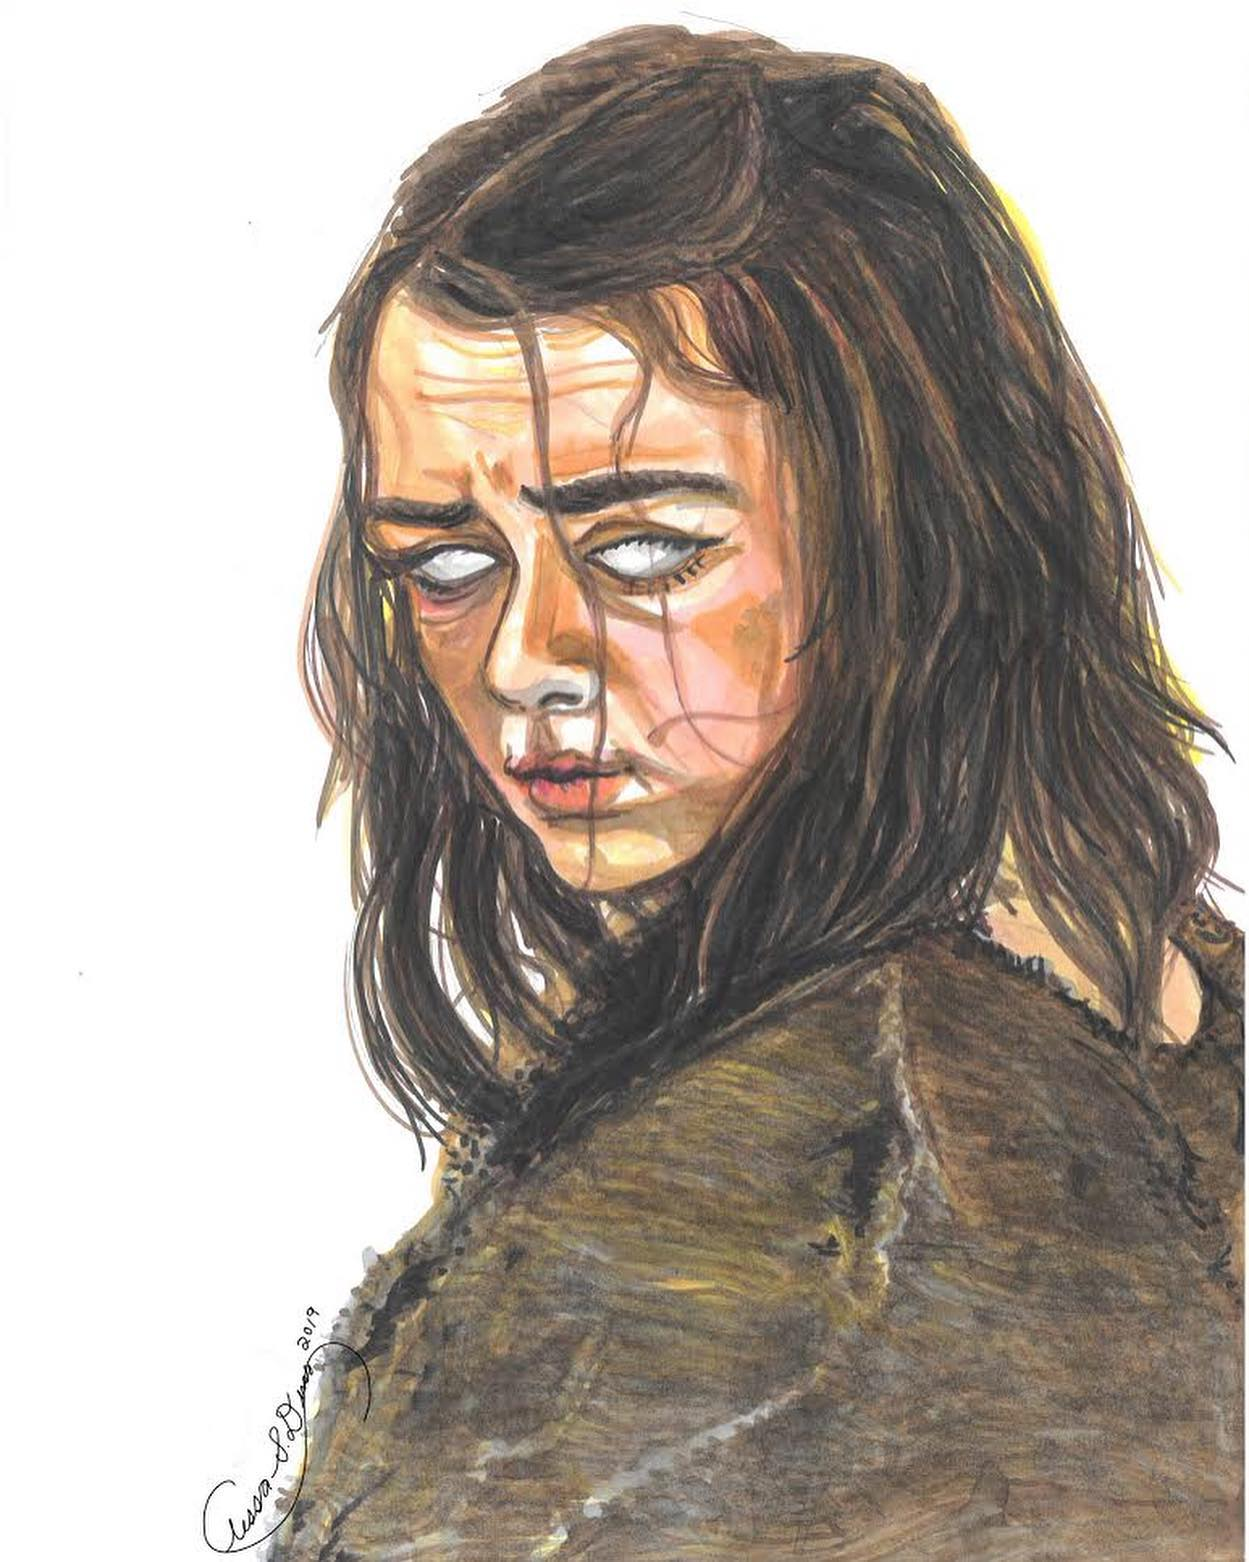 Maisie Williams as Arya Stark. PrismaColor markers on paper.